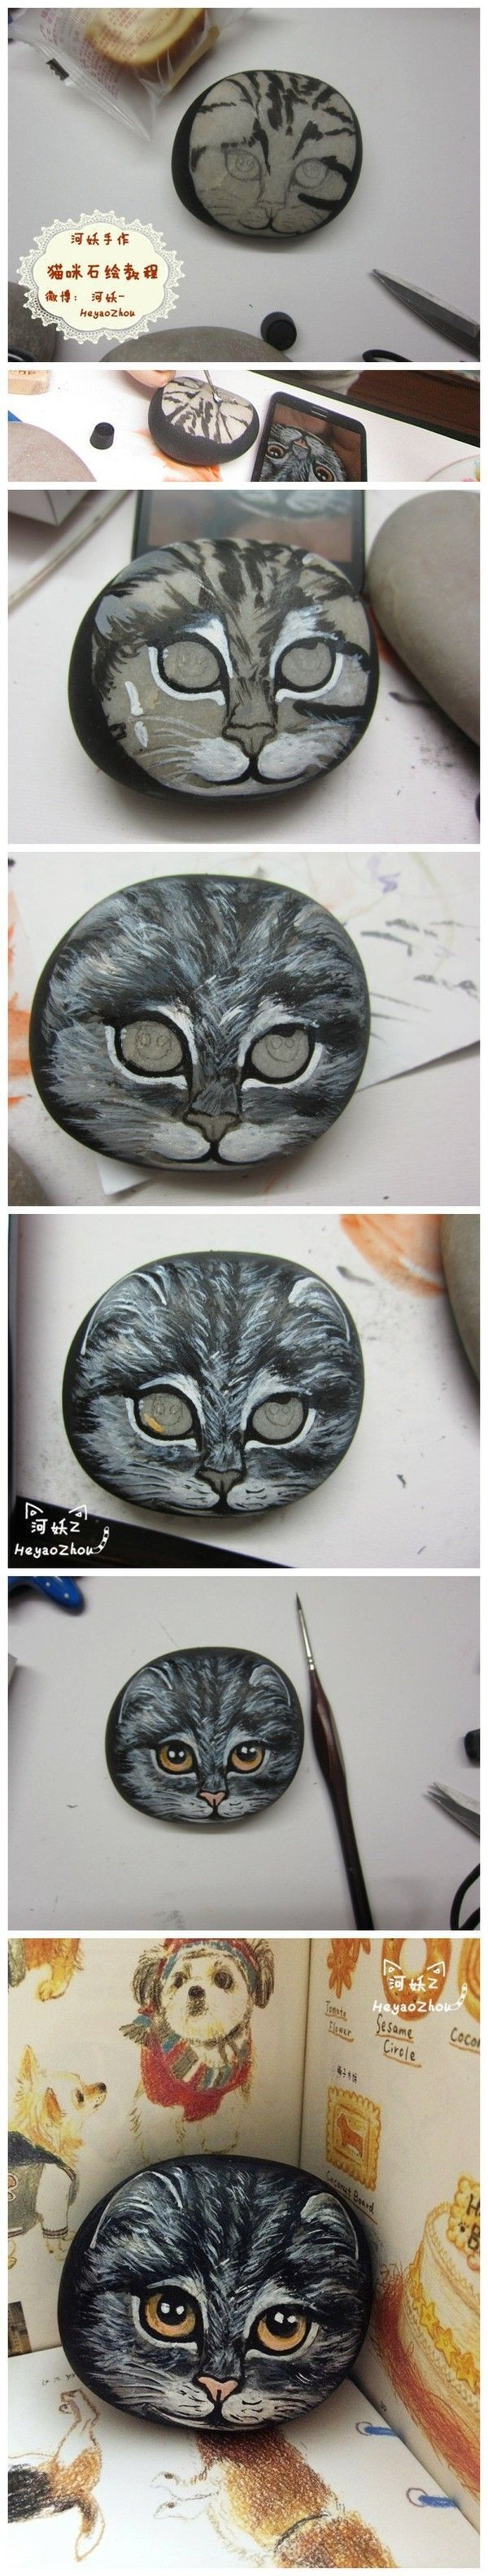 ?全教程 - rock painting cat tutorial (not in English)